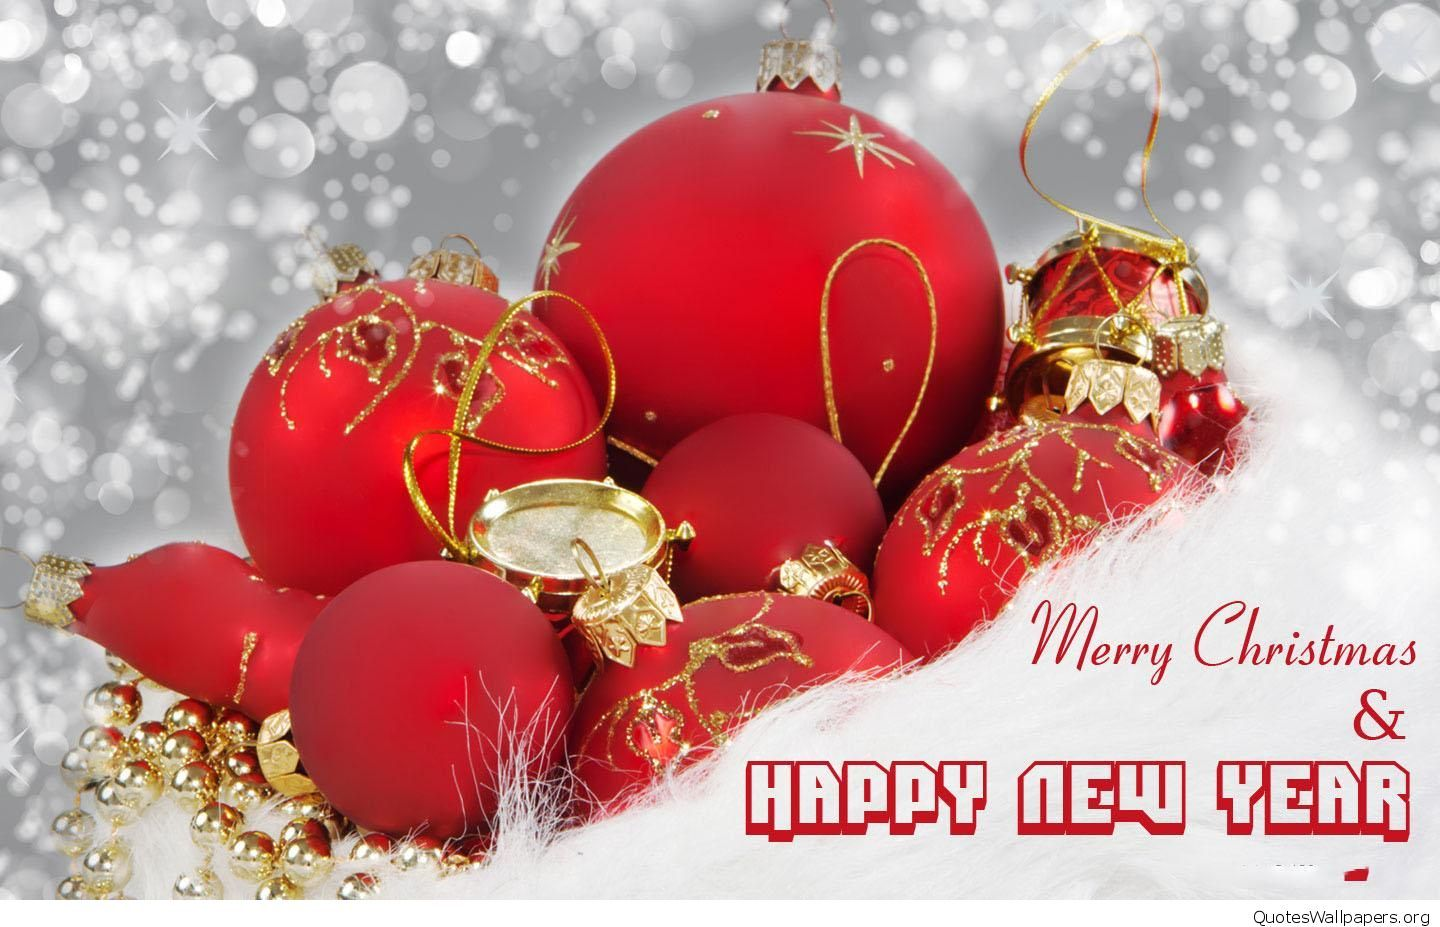 40 New year & Happy new year wallpapers HD 2018 2019